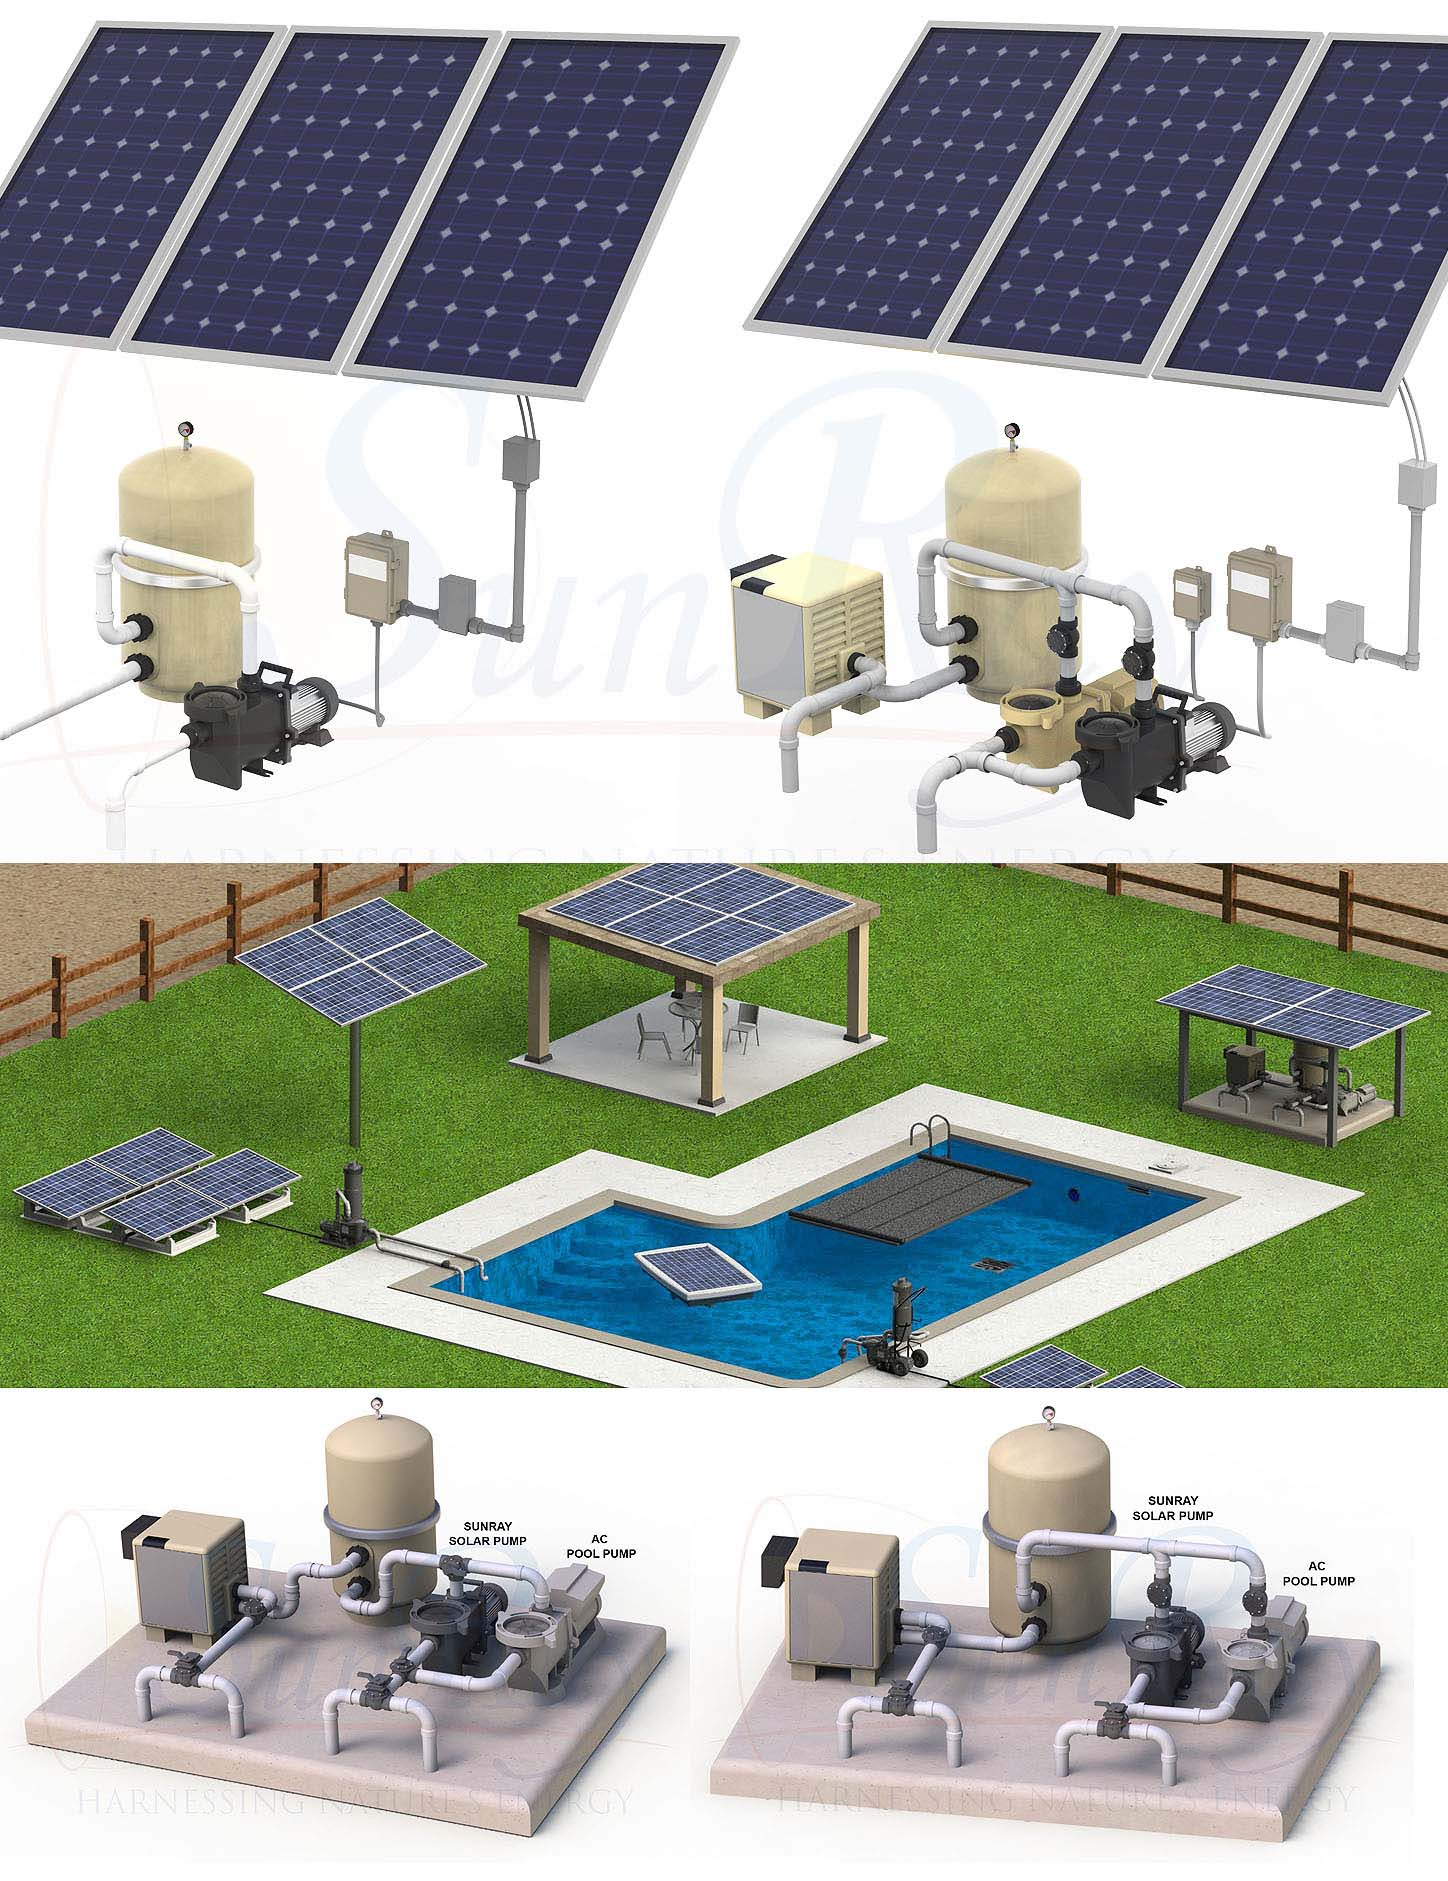 Pool Solarplane 4 X 8 Sunray Solar Pool Pumps Solar Powered Pool Pumps Residential